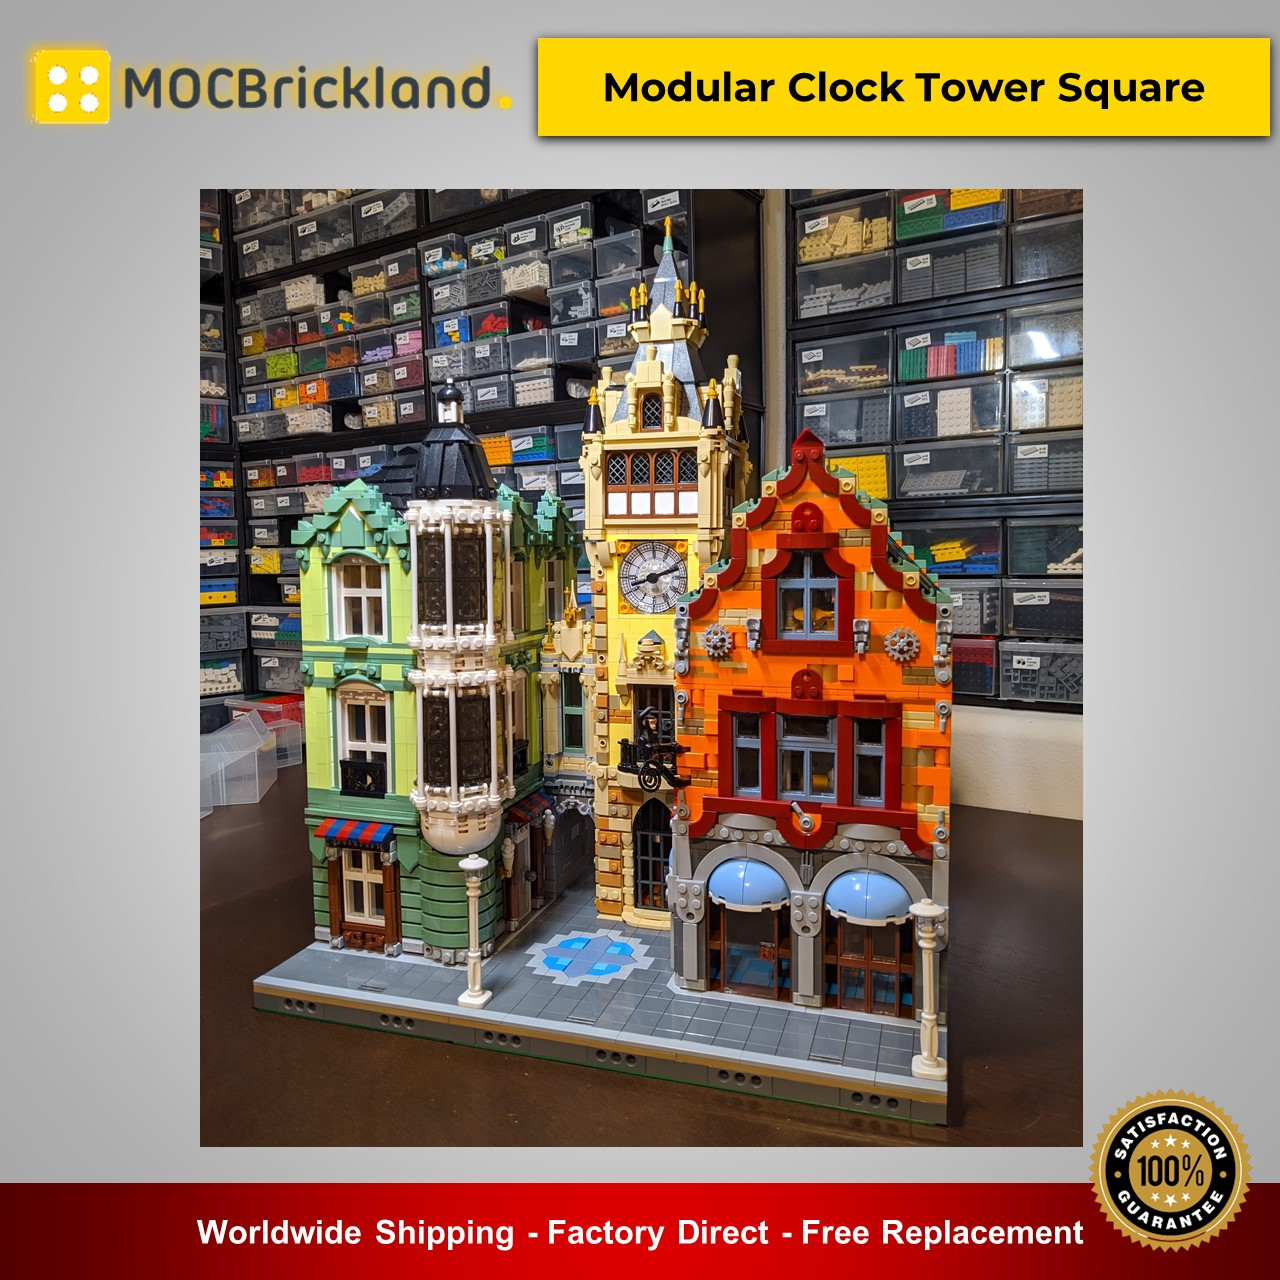 MOC-21266 Modular Clock Tower Square Modular Buildings Designed By bricksandtiles With 6800 Pieces